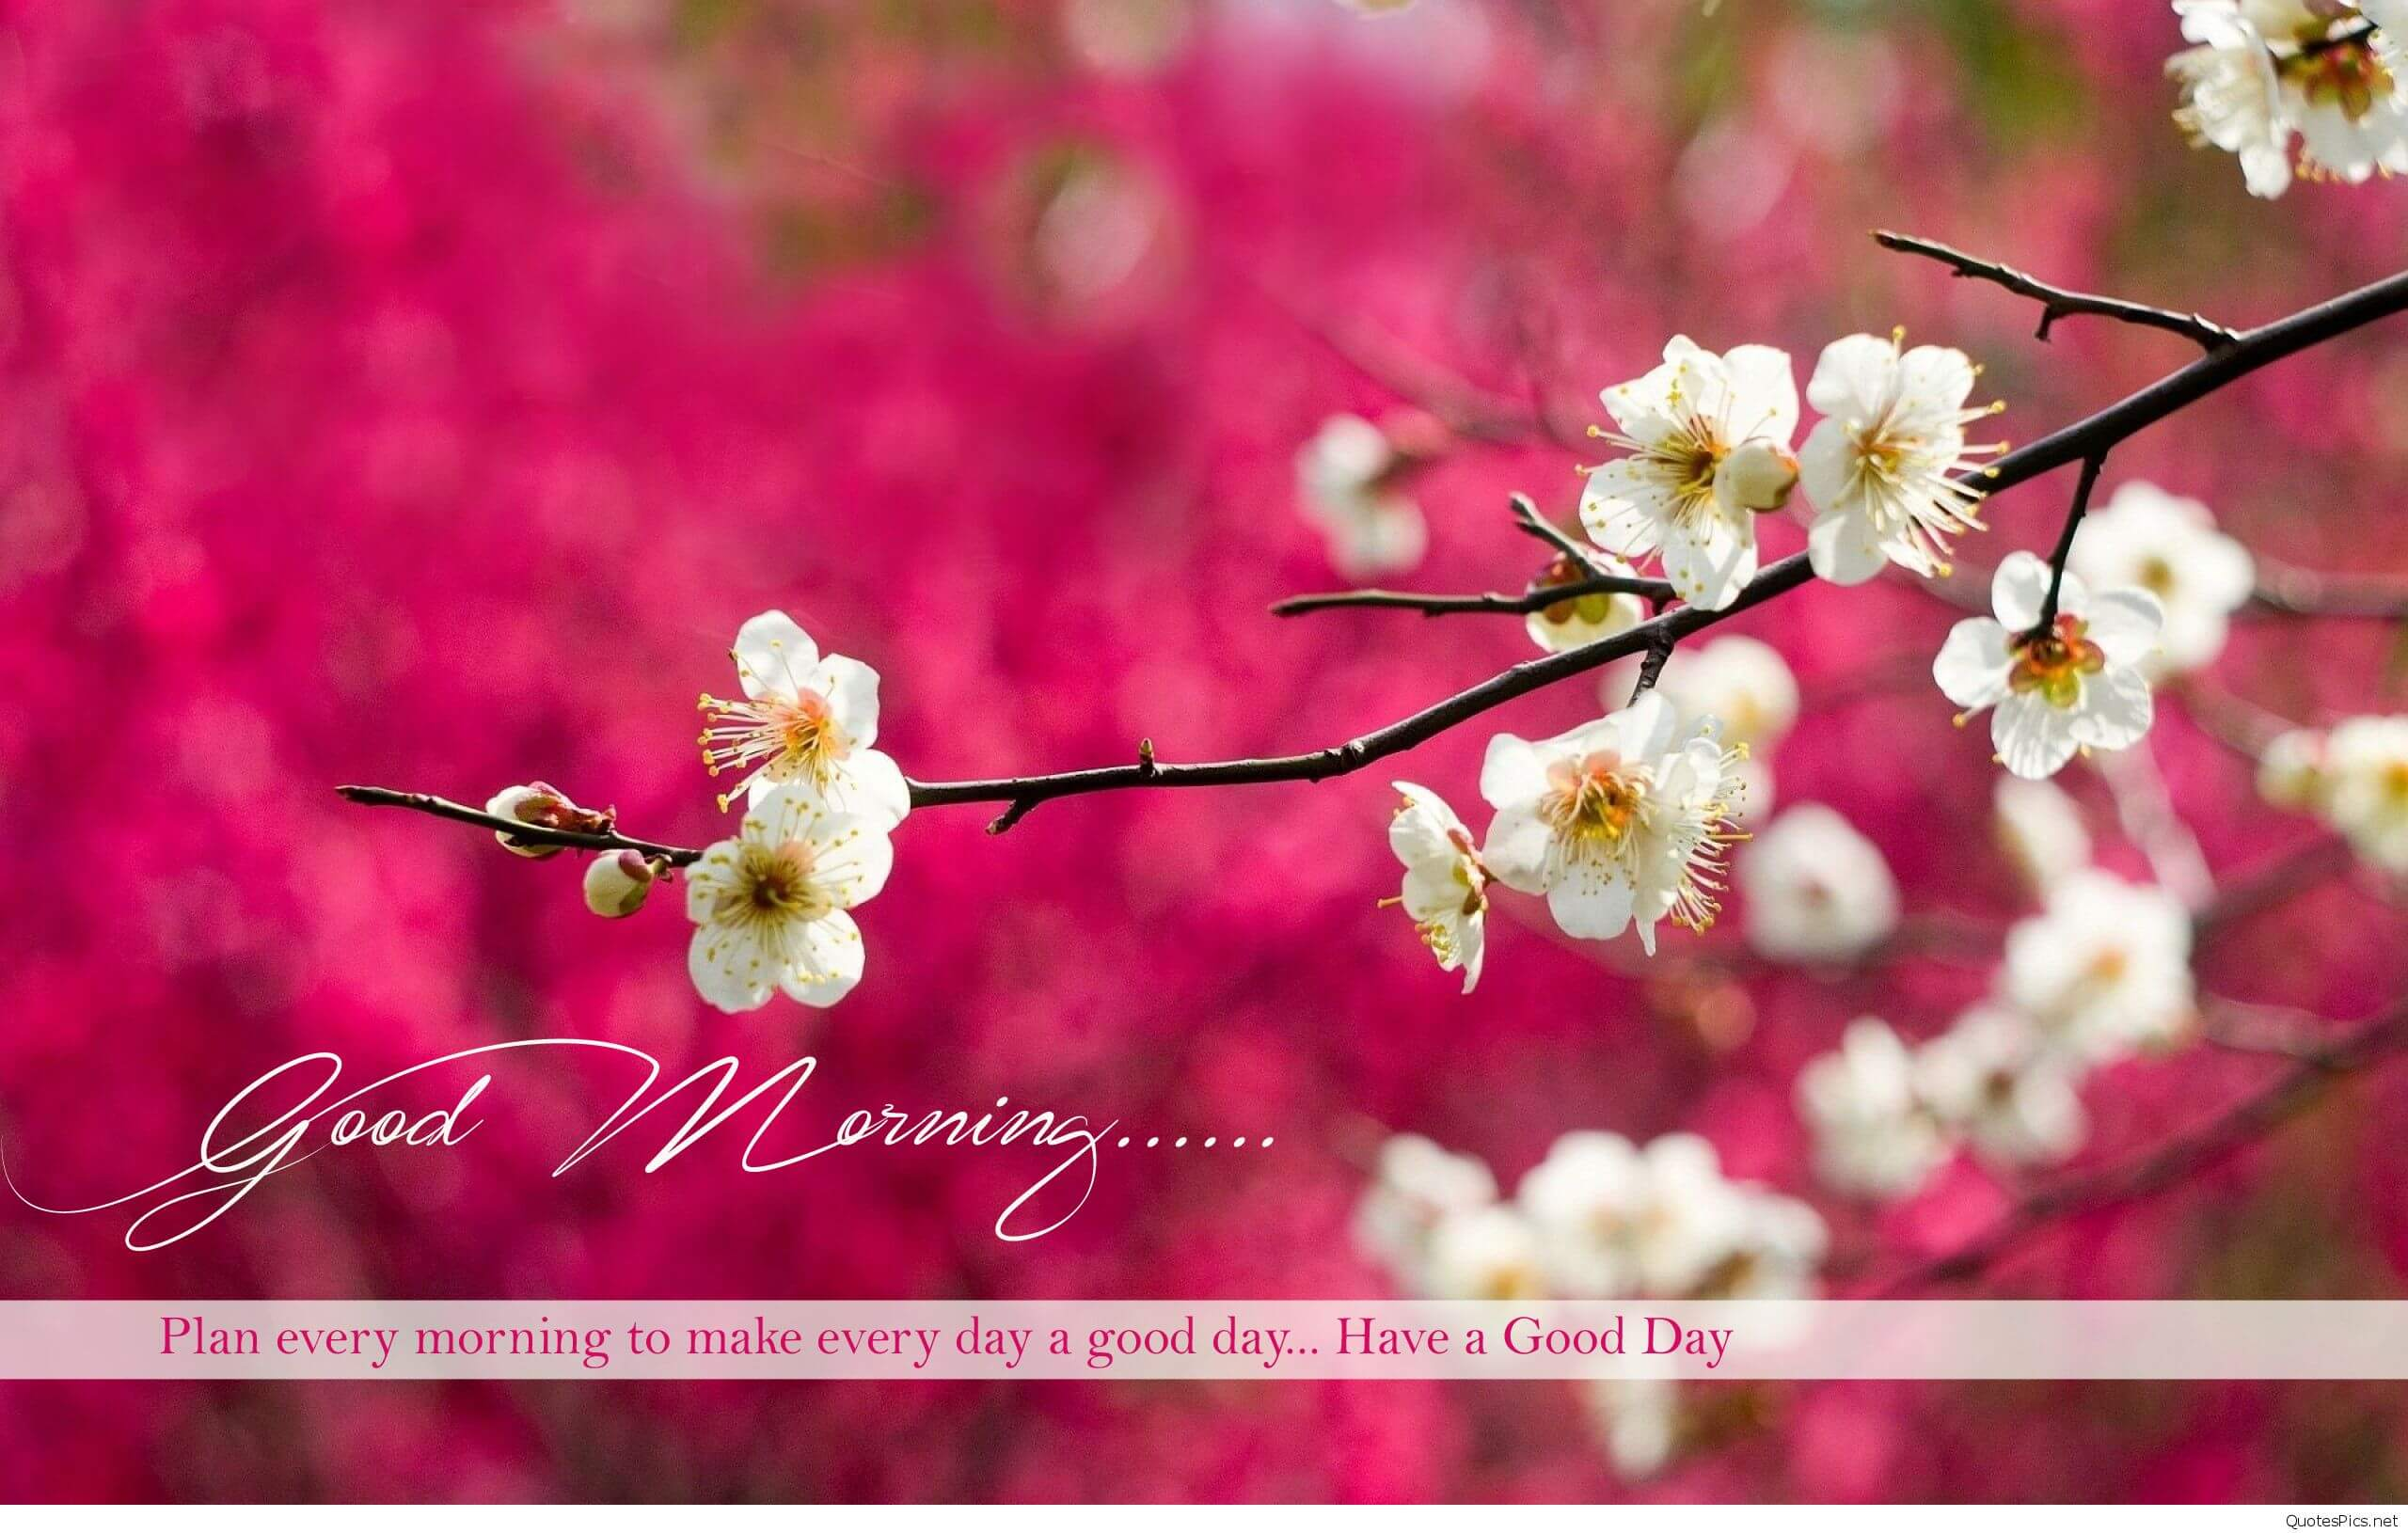 200 Good Morning Wishes Quotes With Images Fungistaaan